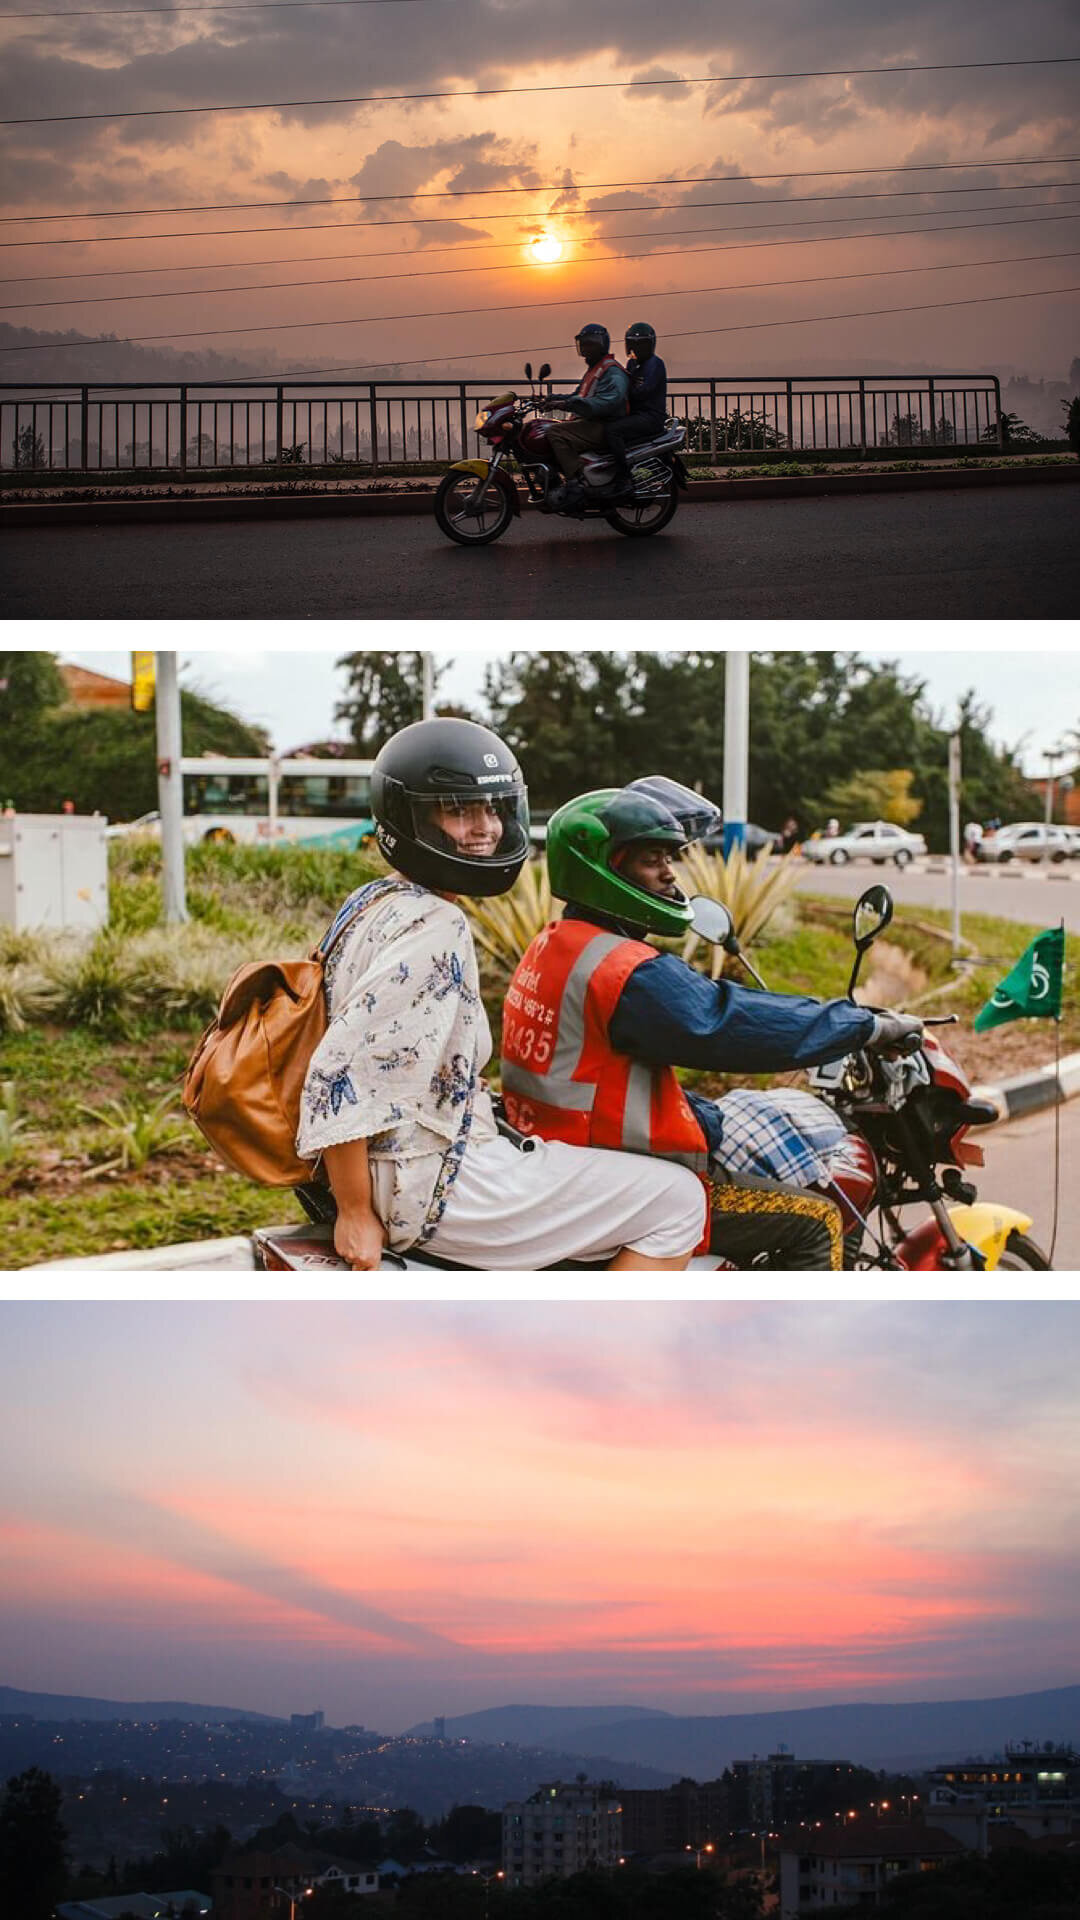 21.Take a Motorcycle ride over the hills of kigali